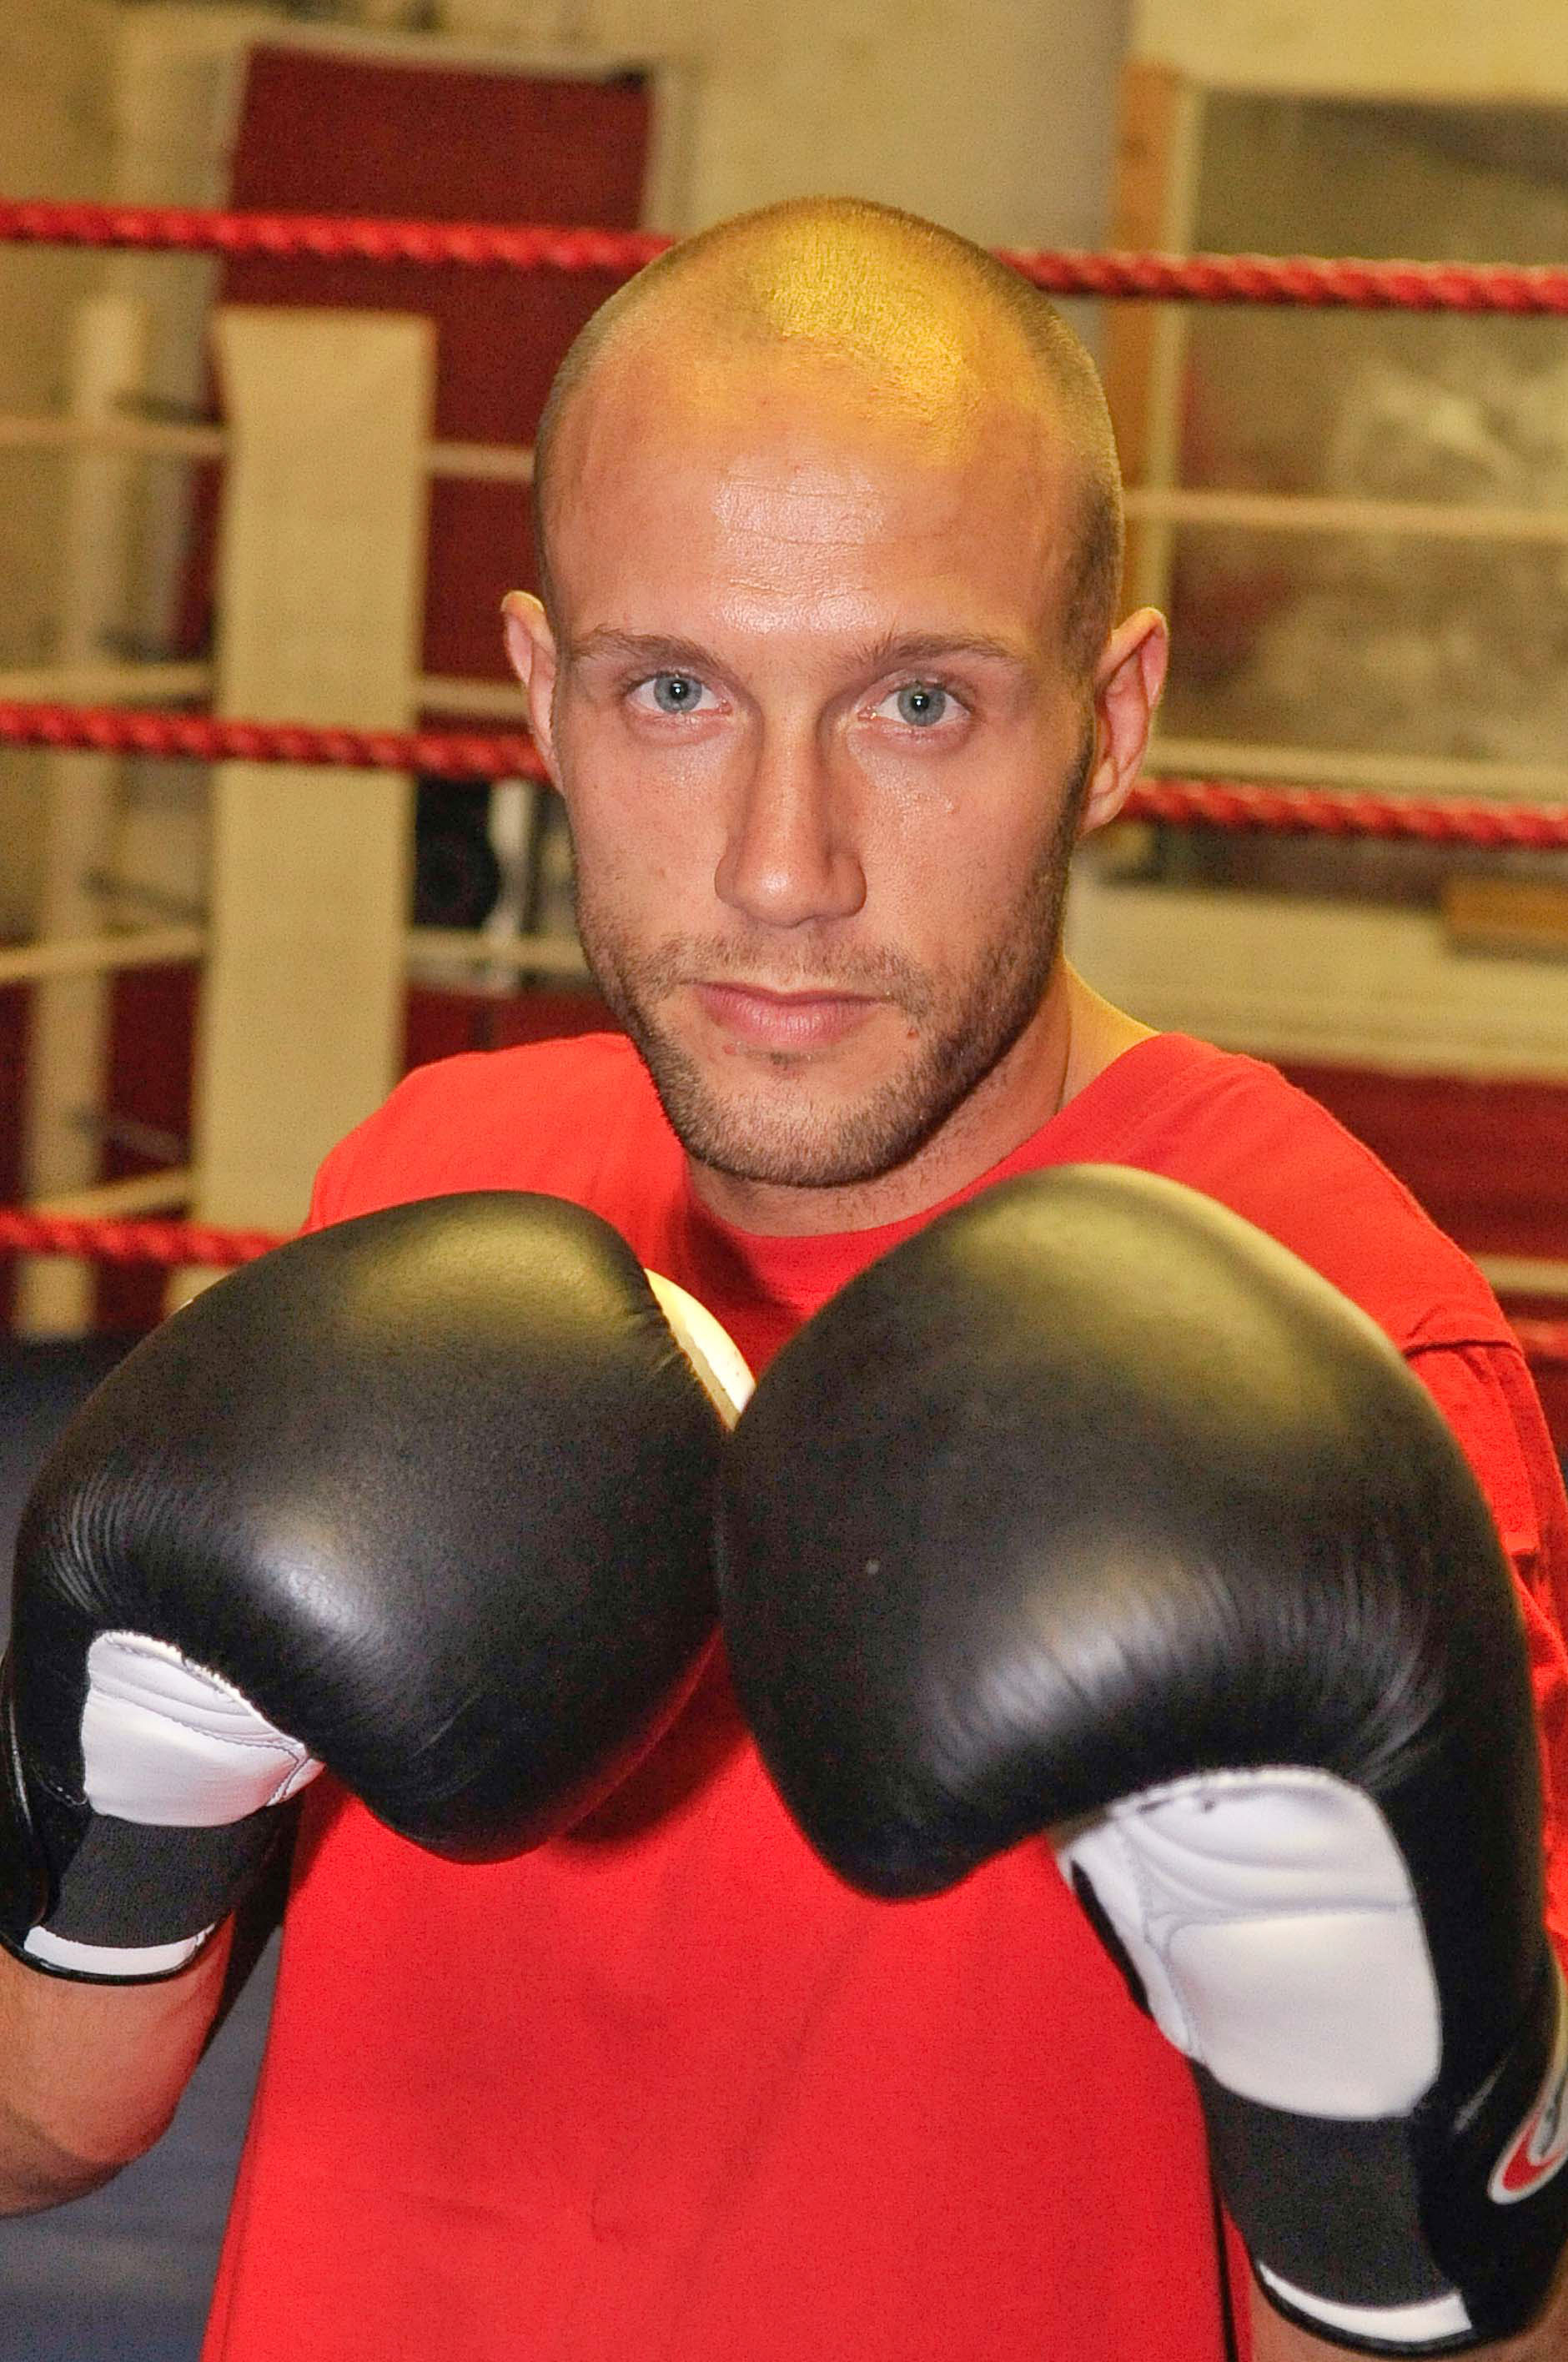 Amatuer boxer Shane Davies kept his football career alive by taking on a false identity - and then slapped a ref and broke his nose